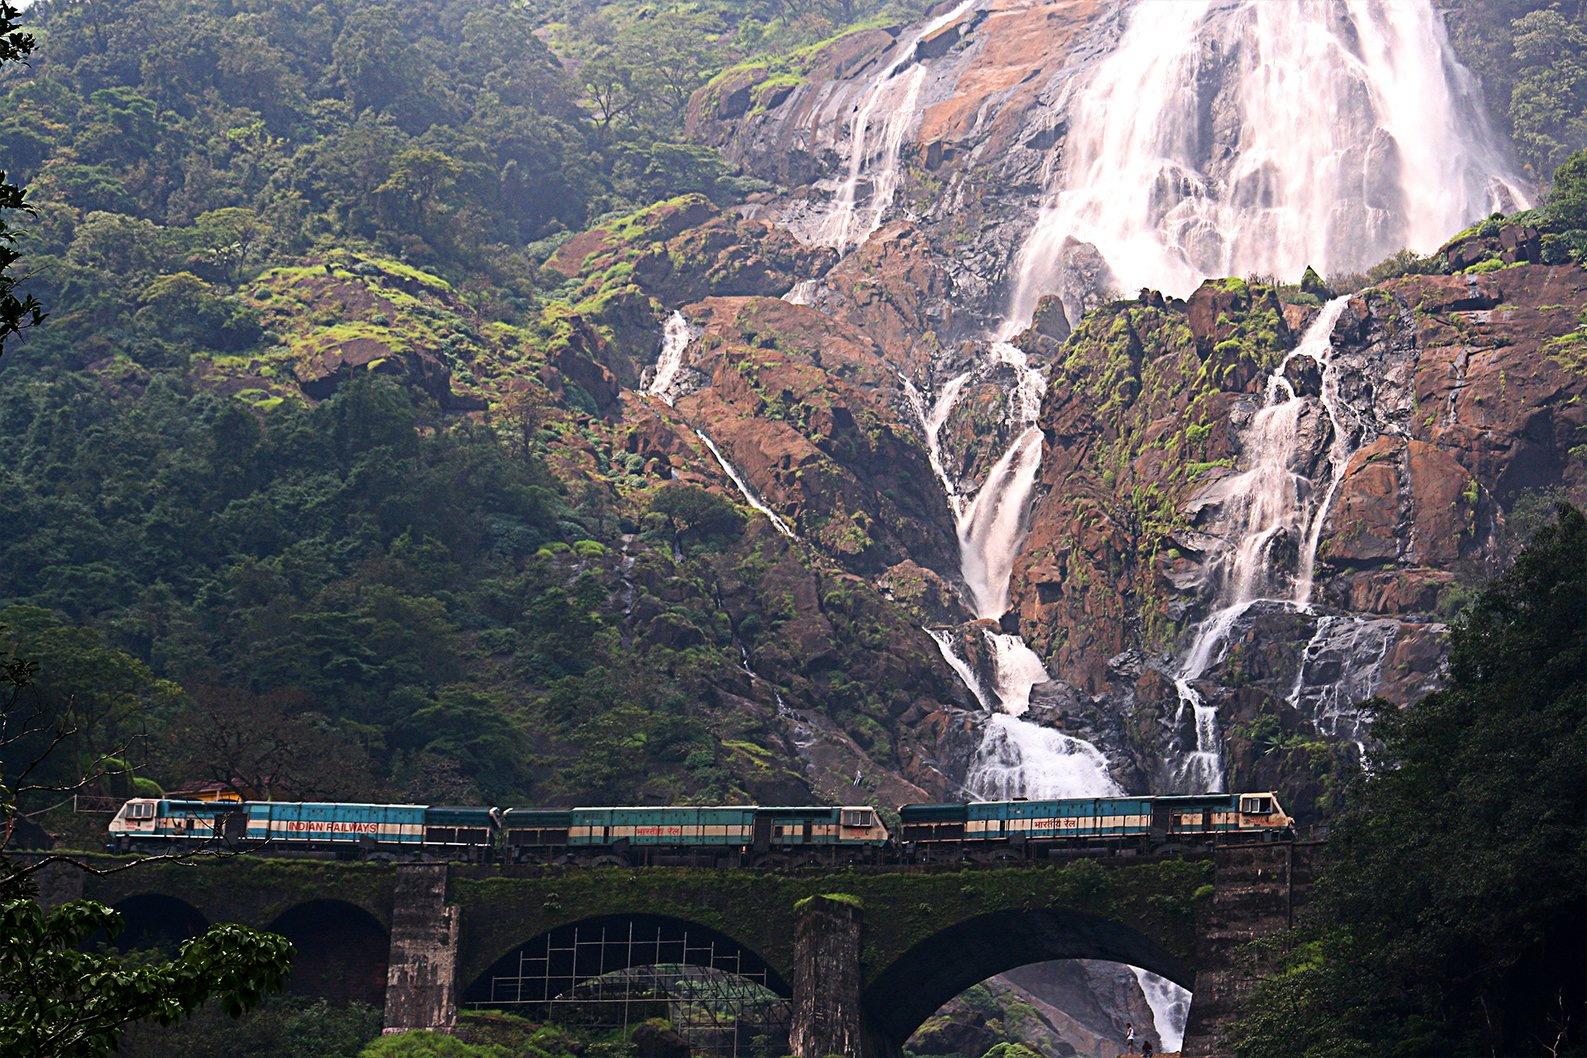 One of the best trains in India passing the Dudhsagar waterfall